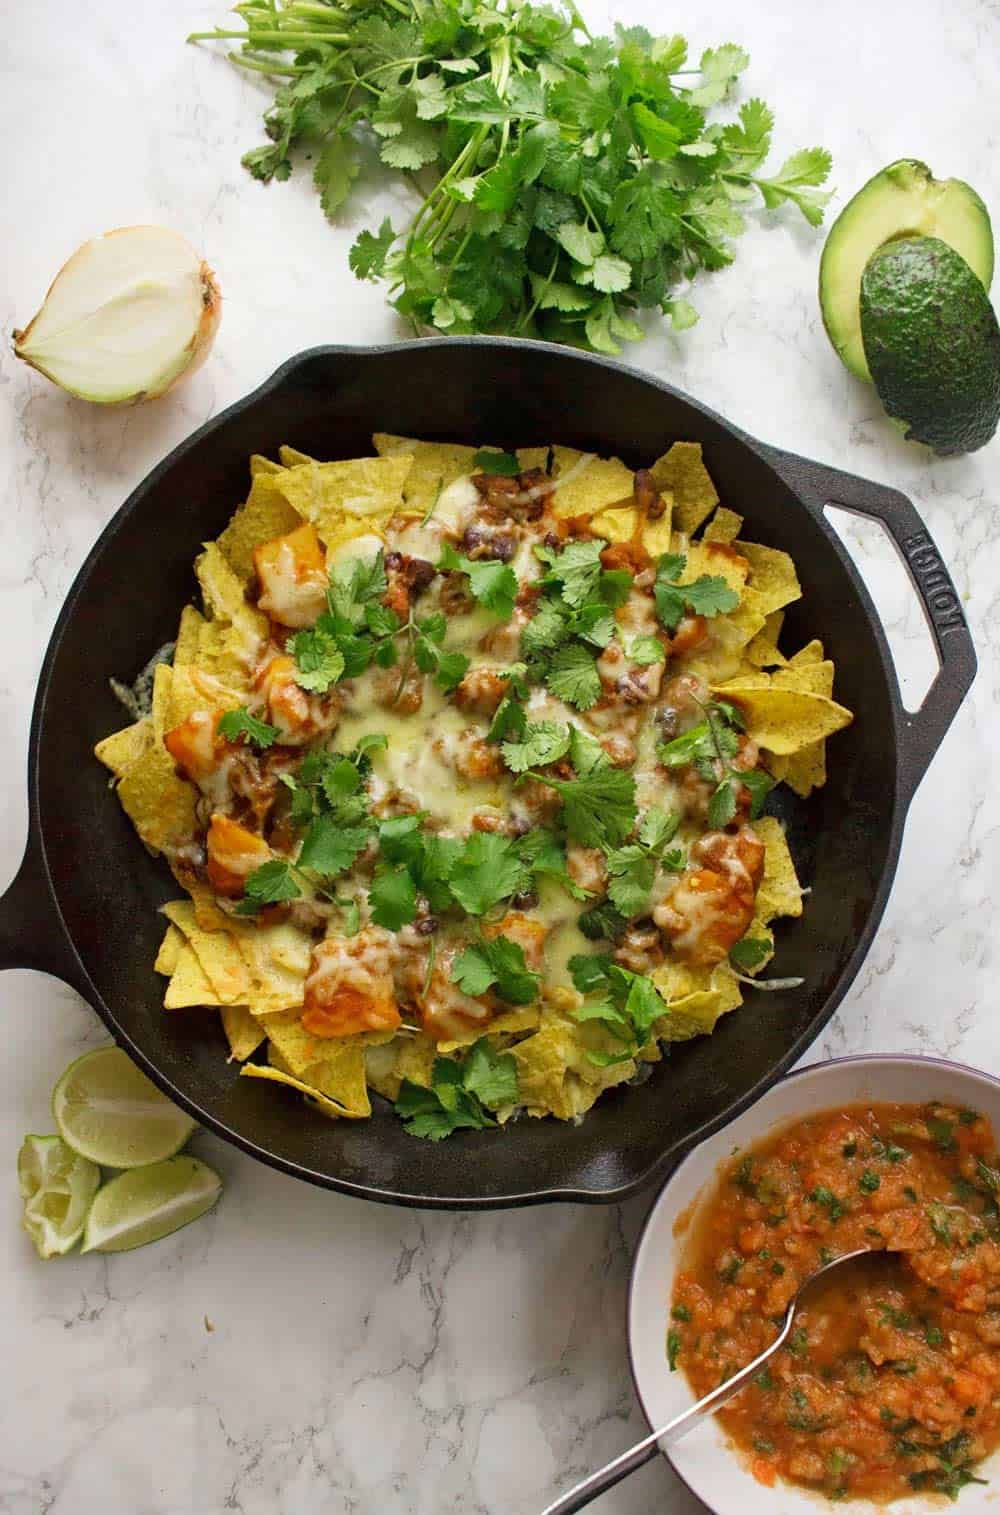 Vegan chilli nachos + 15 Farmers market recipes to make in January! Delicious, winter, (mostly) healthy recipes made with fresh, seasonal produce from your local farmers market or CSA bin. Eat local!